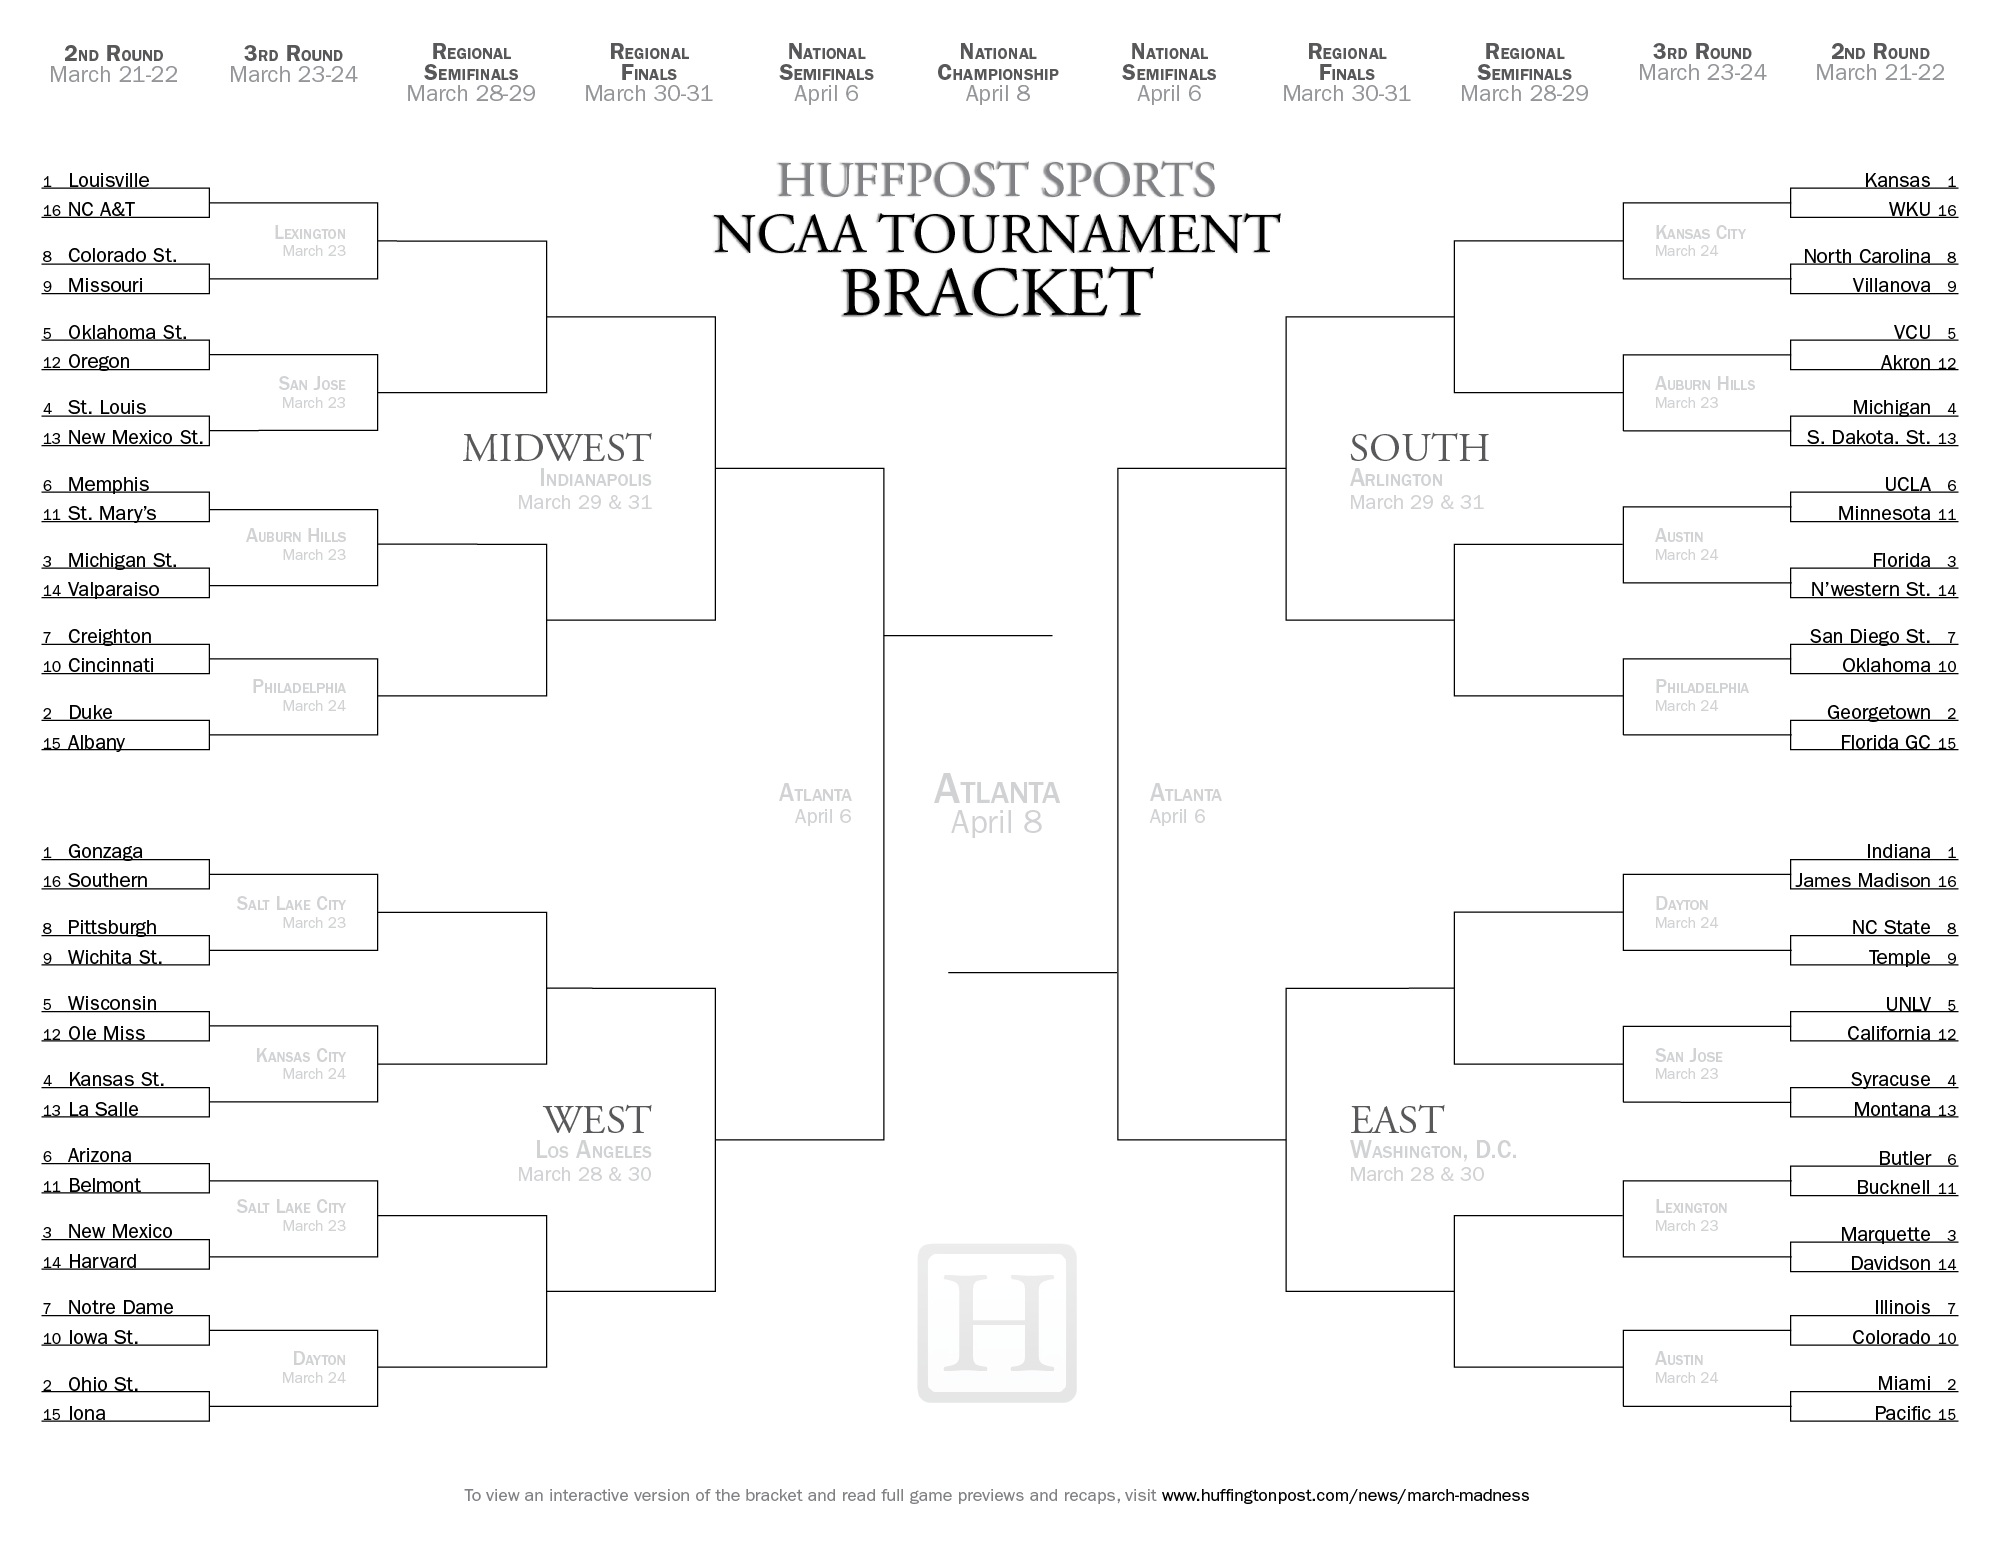 2014 NCAA March Madness Bracket